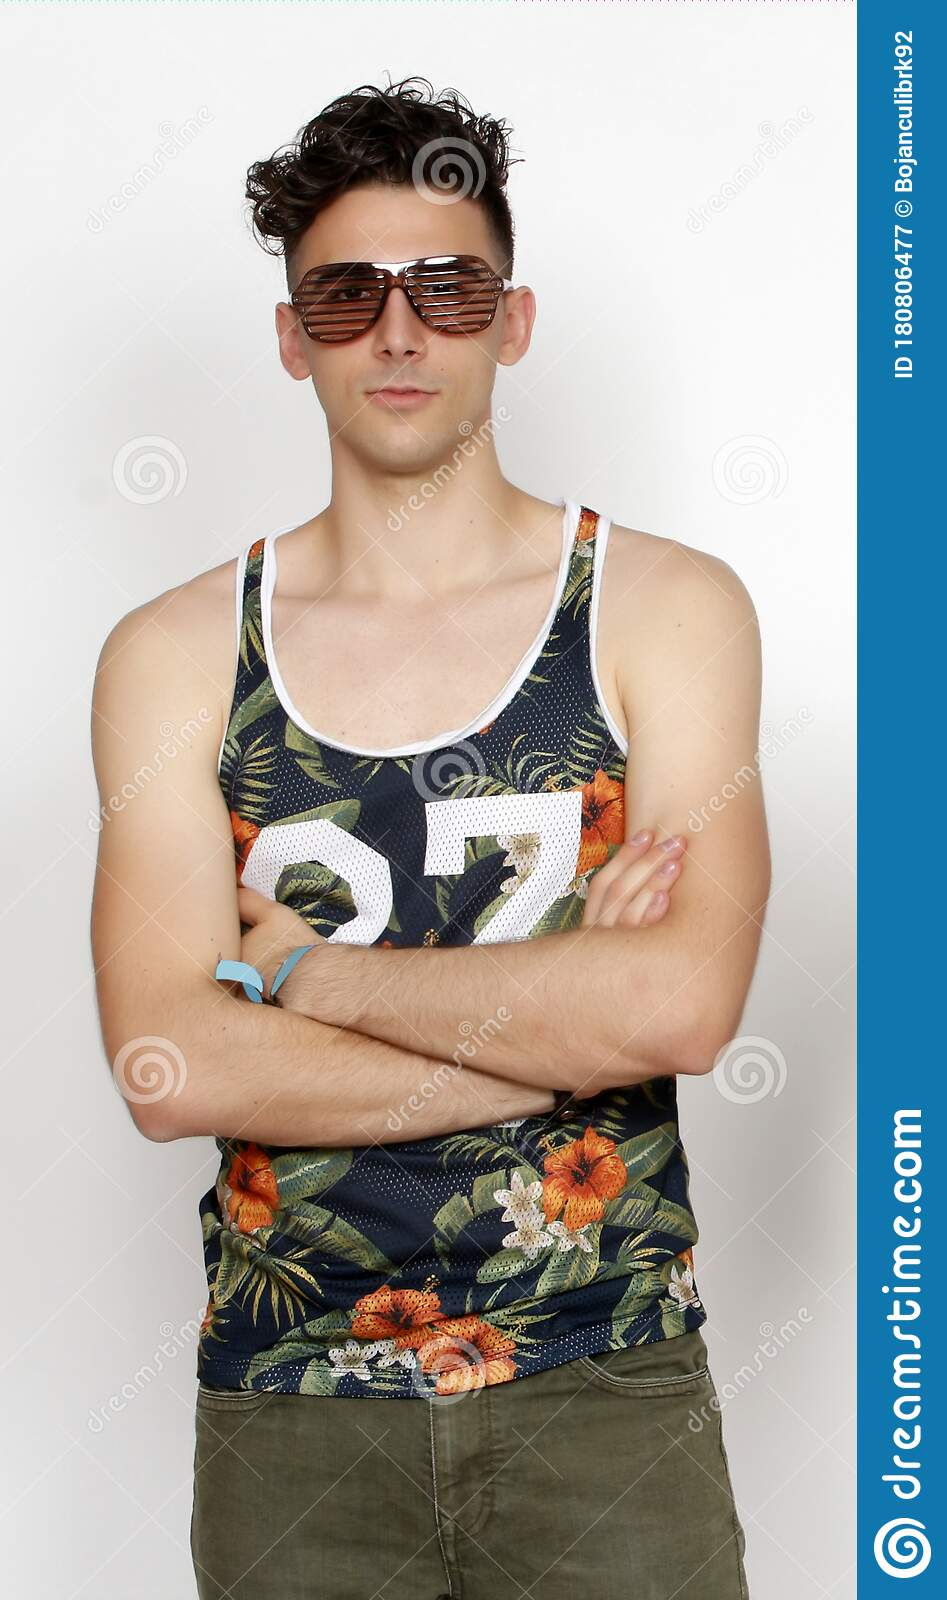 Cool Young Hipster Guy With Short Curly Hair And Shutter Shade Glasses Is Posing In Studio On Isolated Background Style Fashion Stock Image Image Of Entertainment Cool 180806477